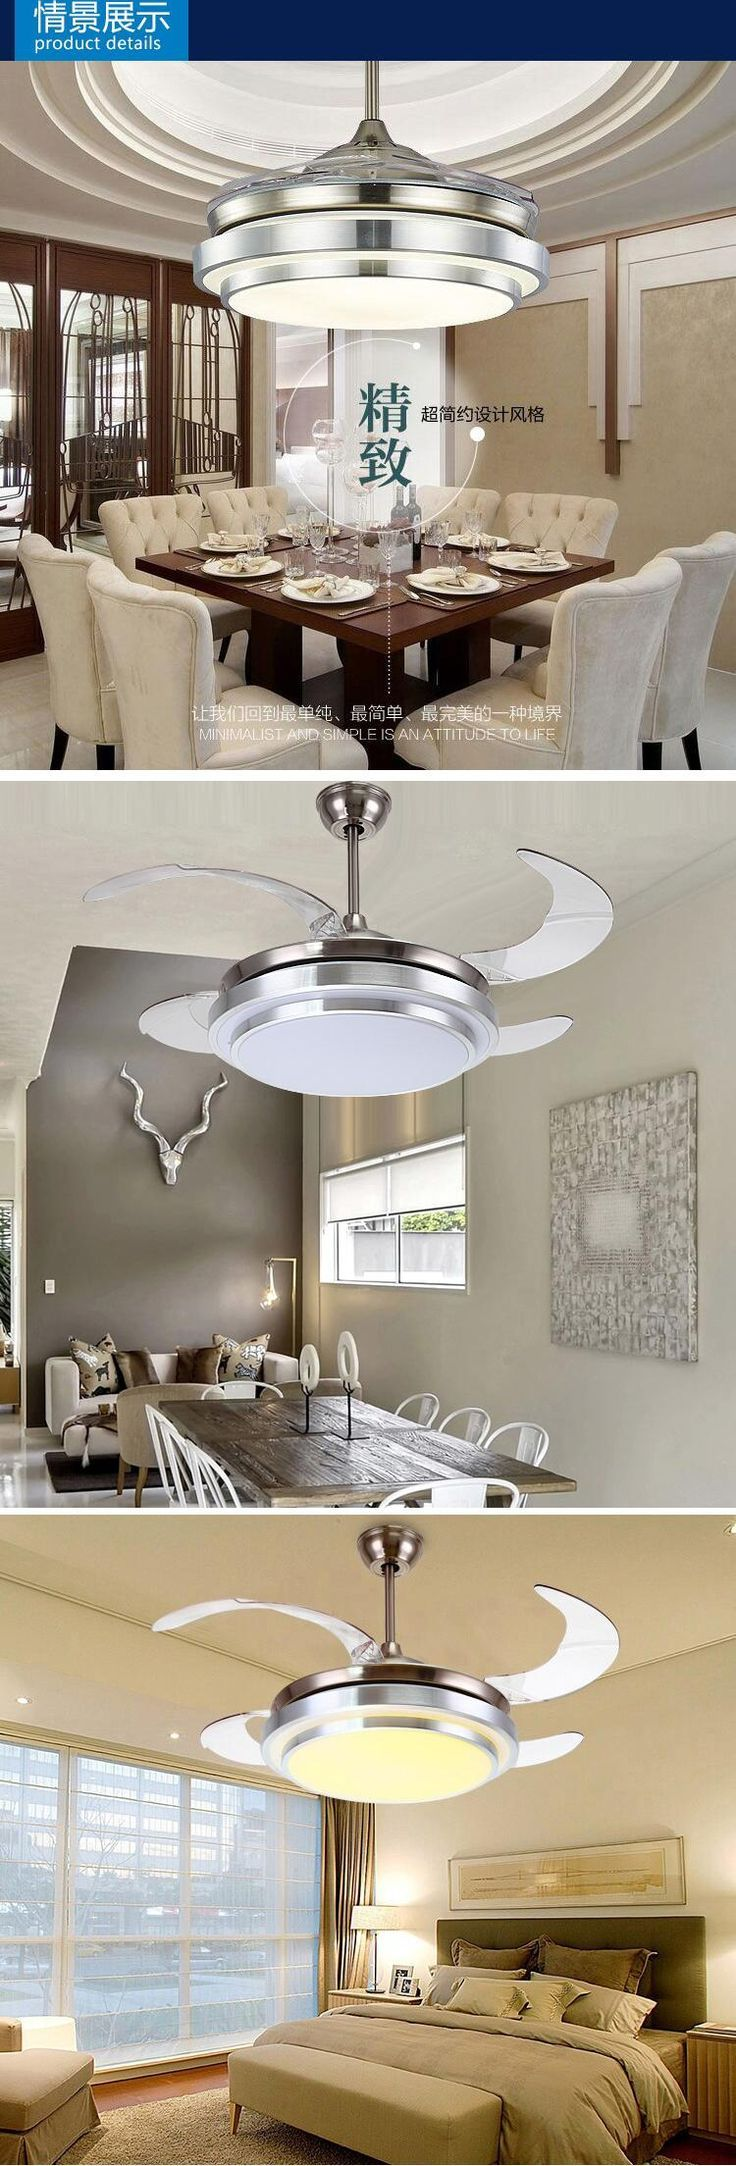 Quiet Ceiling Fans For Bedroom Best Ideas About Fan And